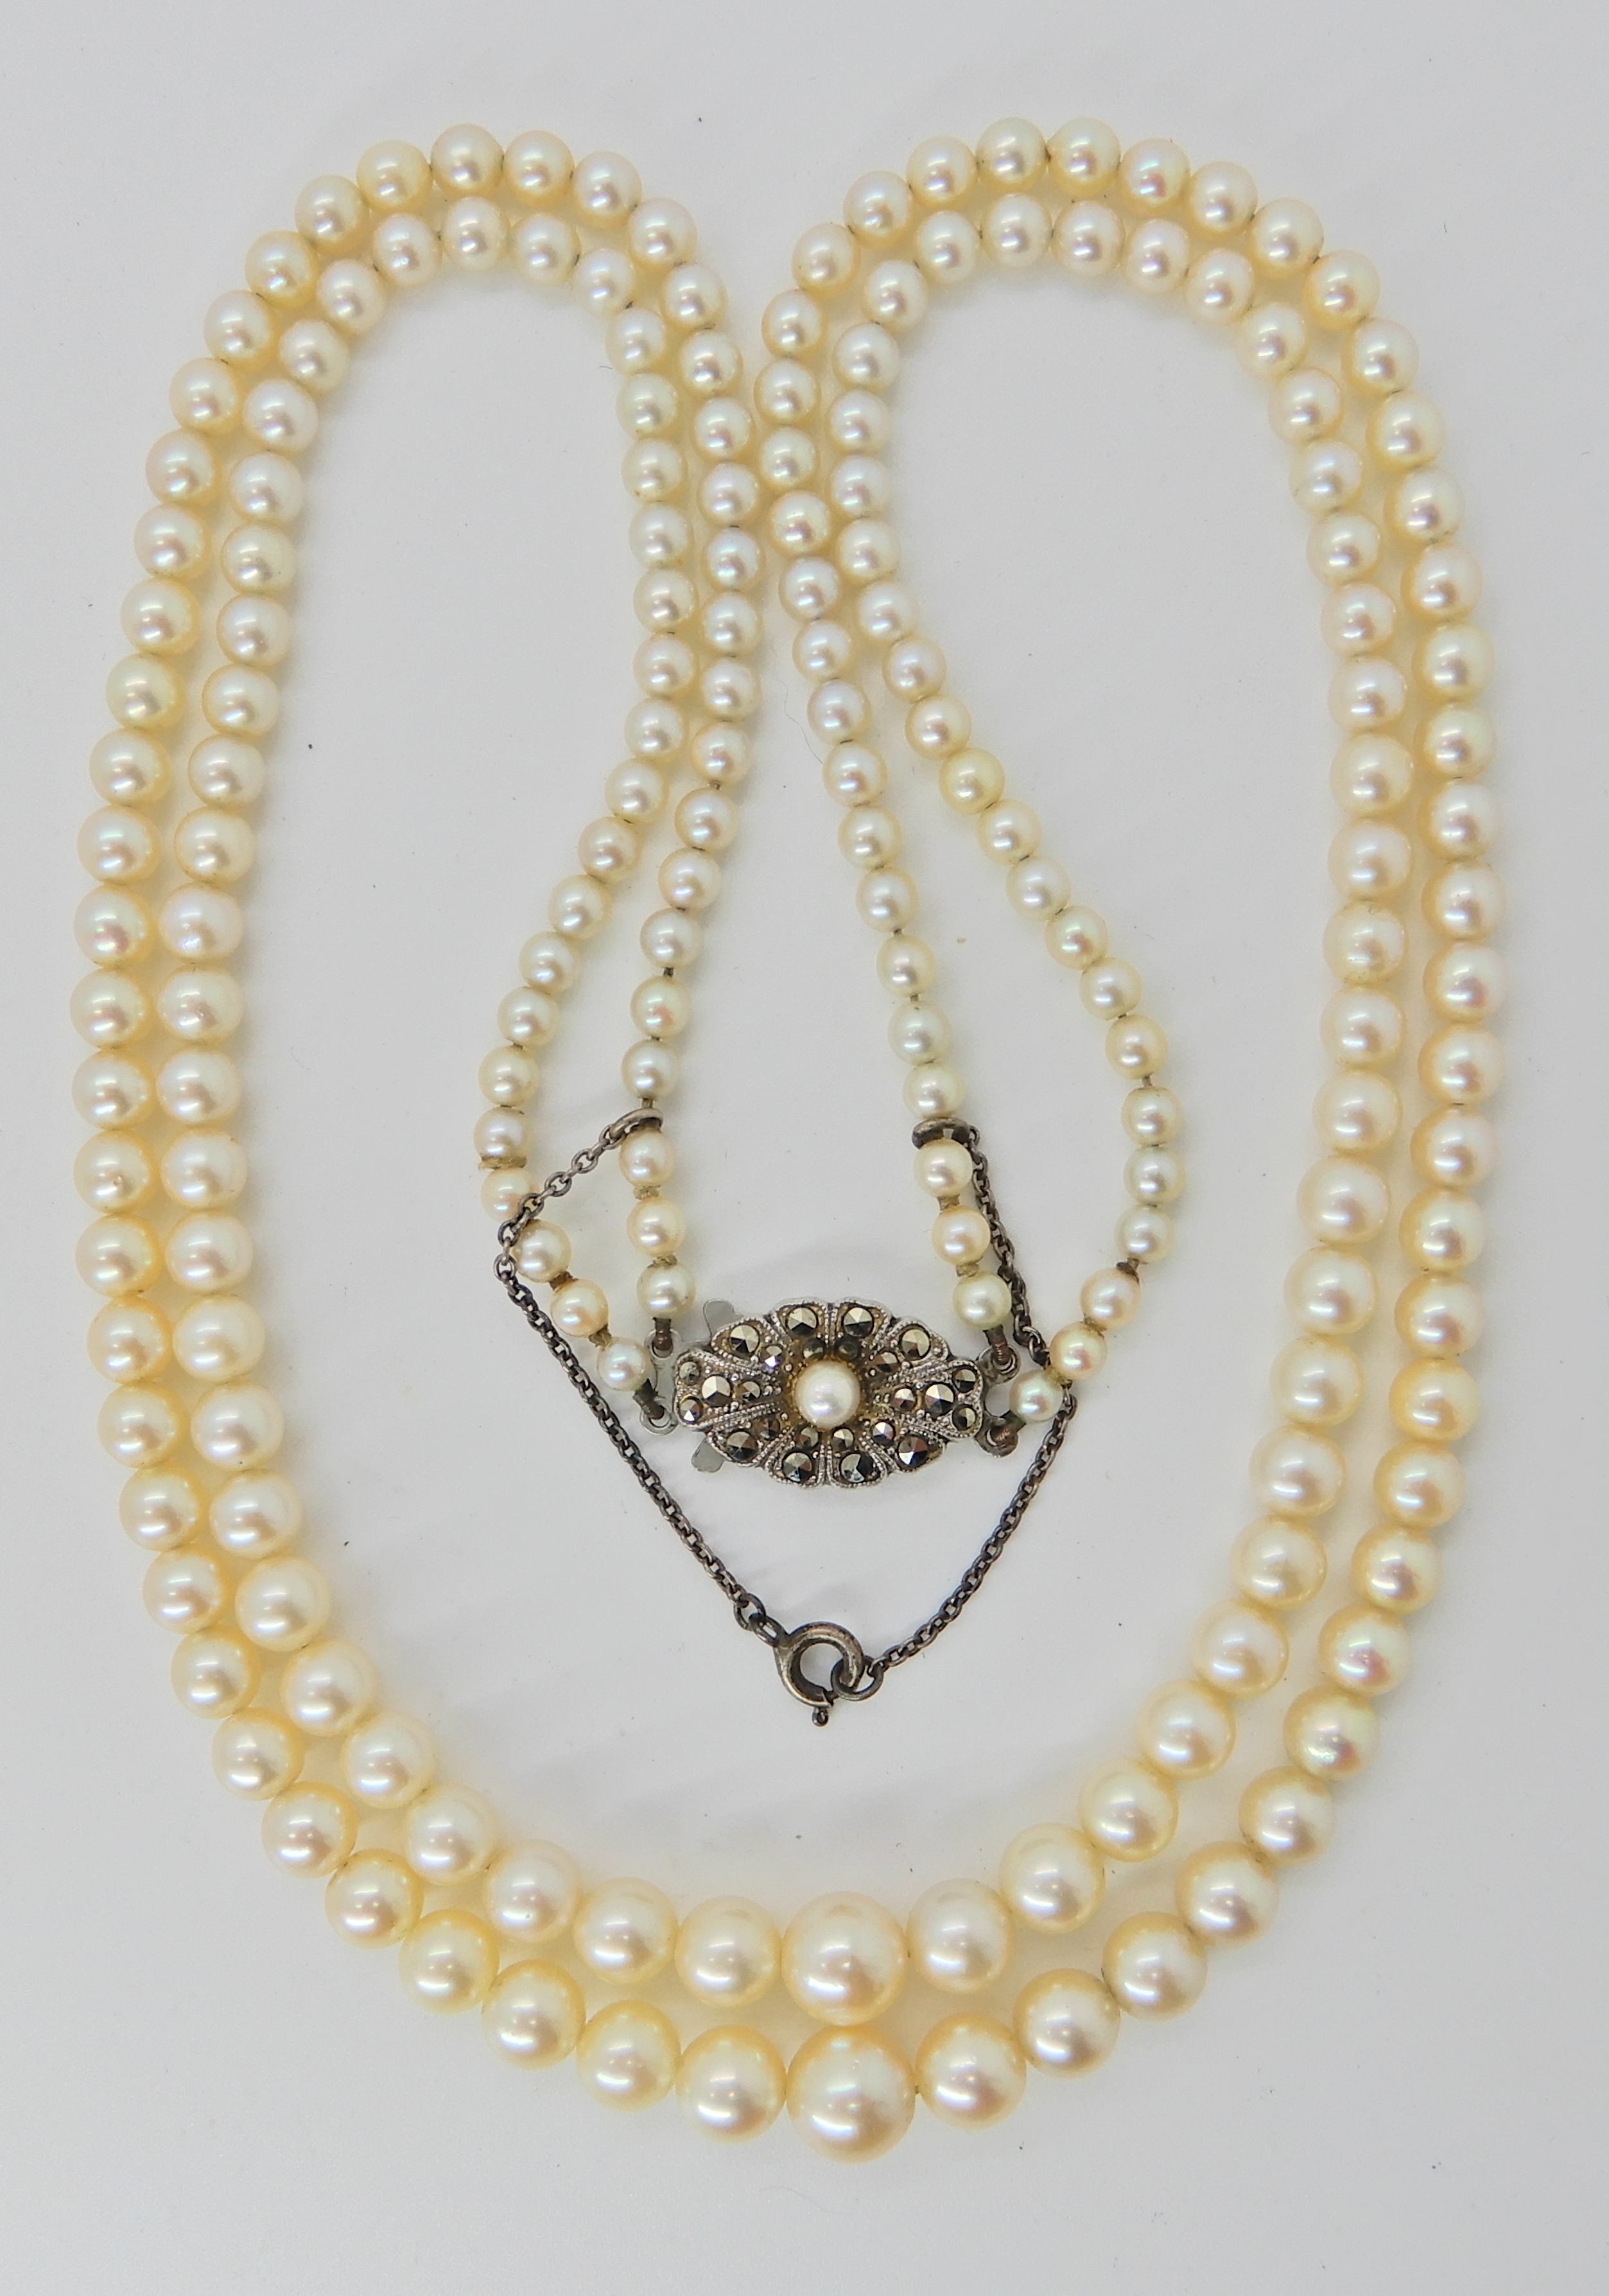 Lot 2 - A double string of cream tapered pearls with good lustre and a silver clasp, largest pearl approx